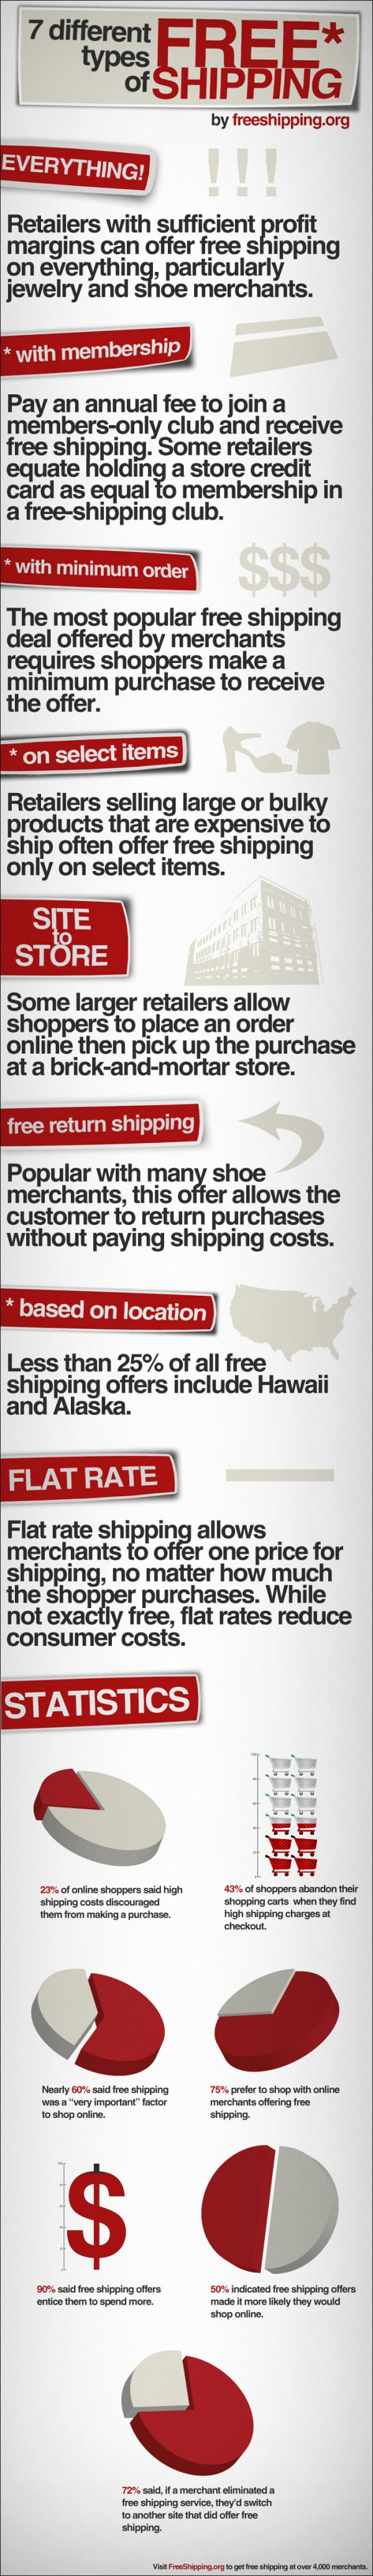 free-shipping-types